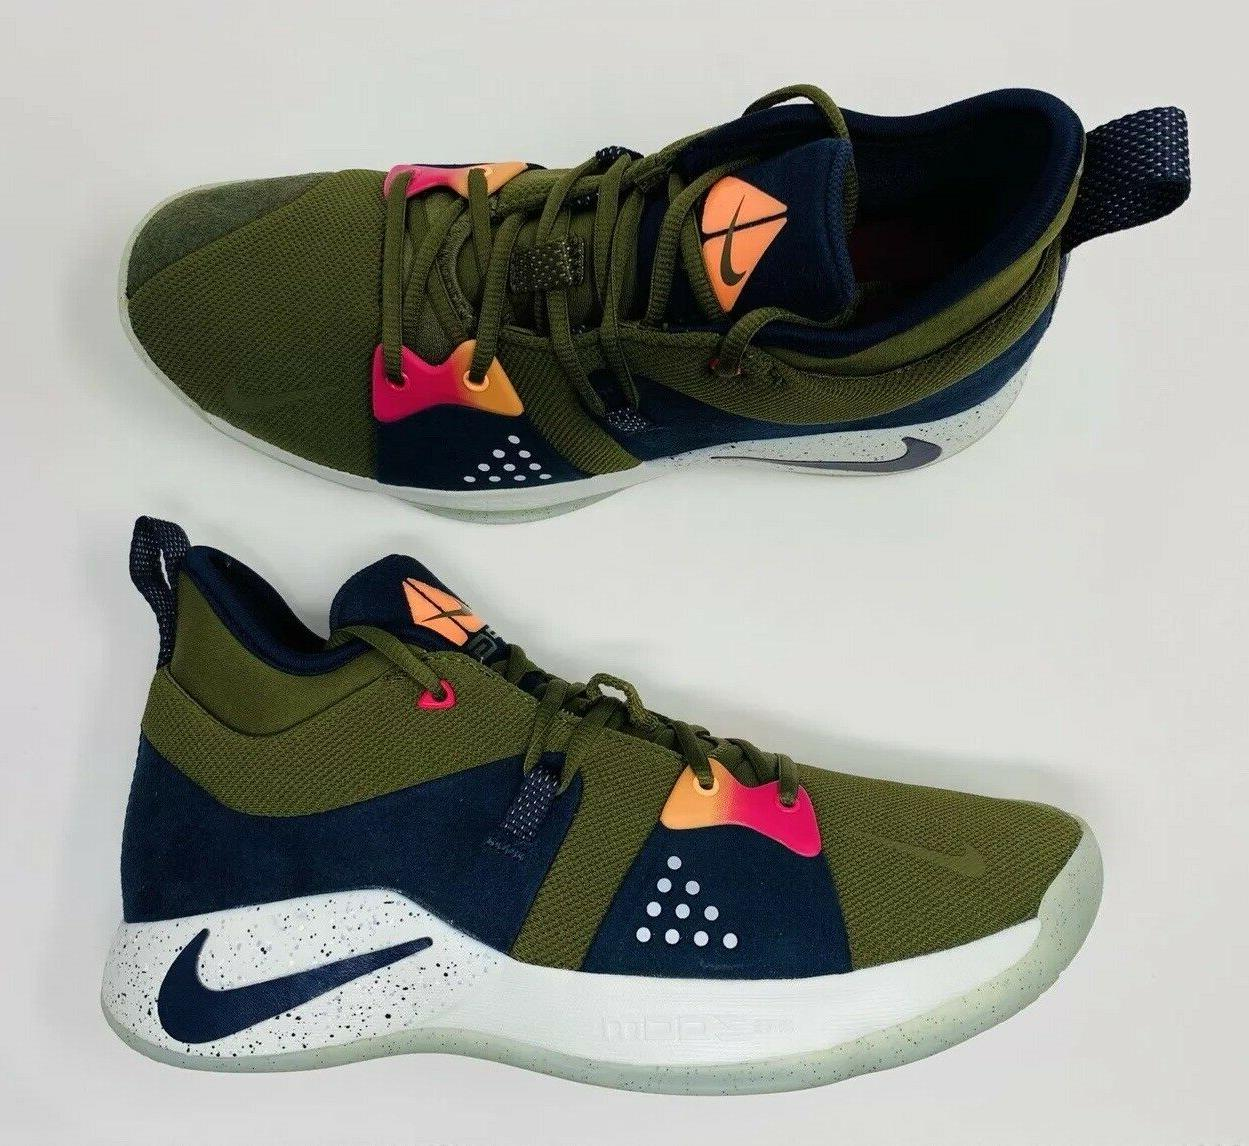 Nike PG 2 Olive Shoes 11